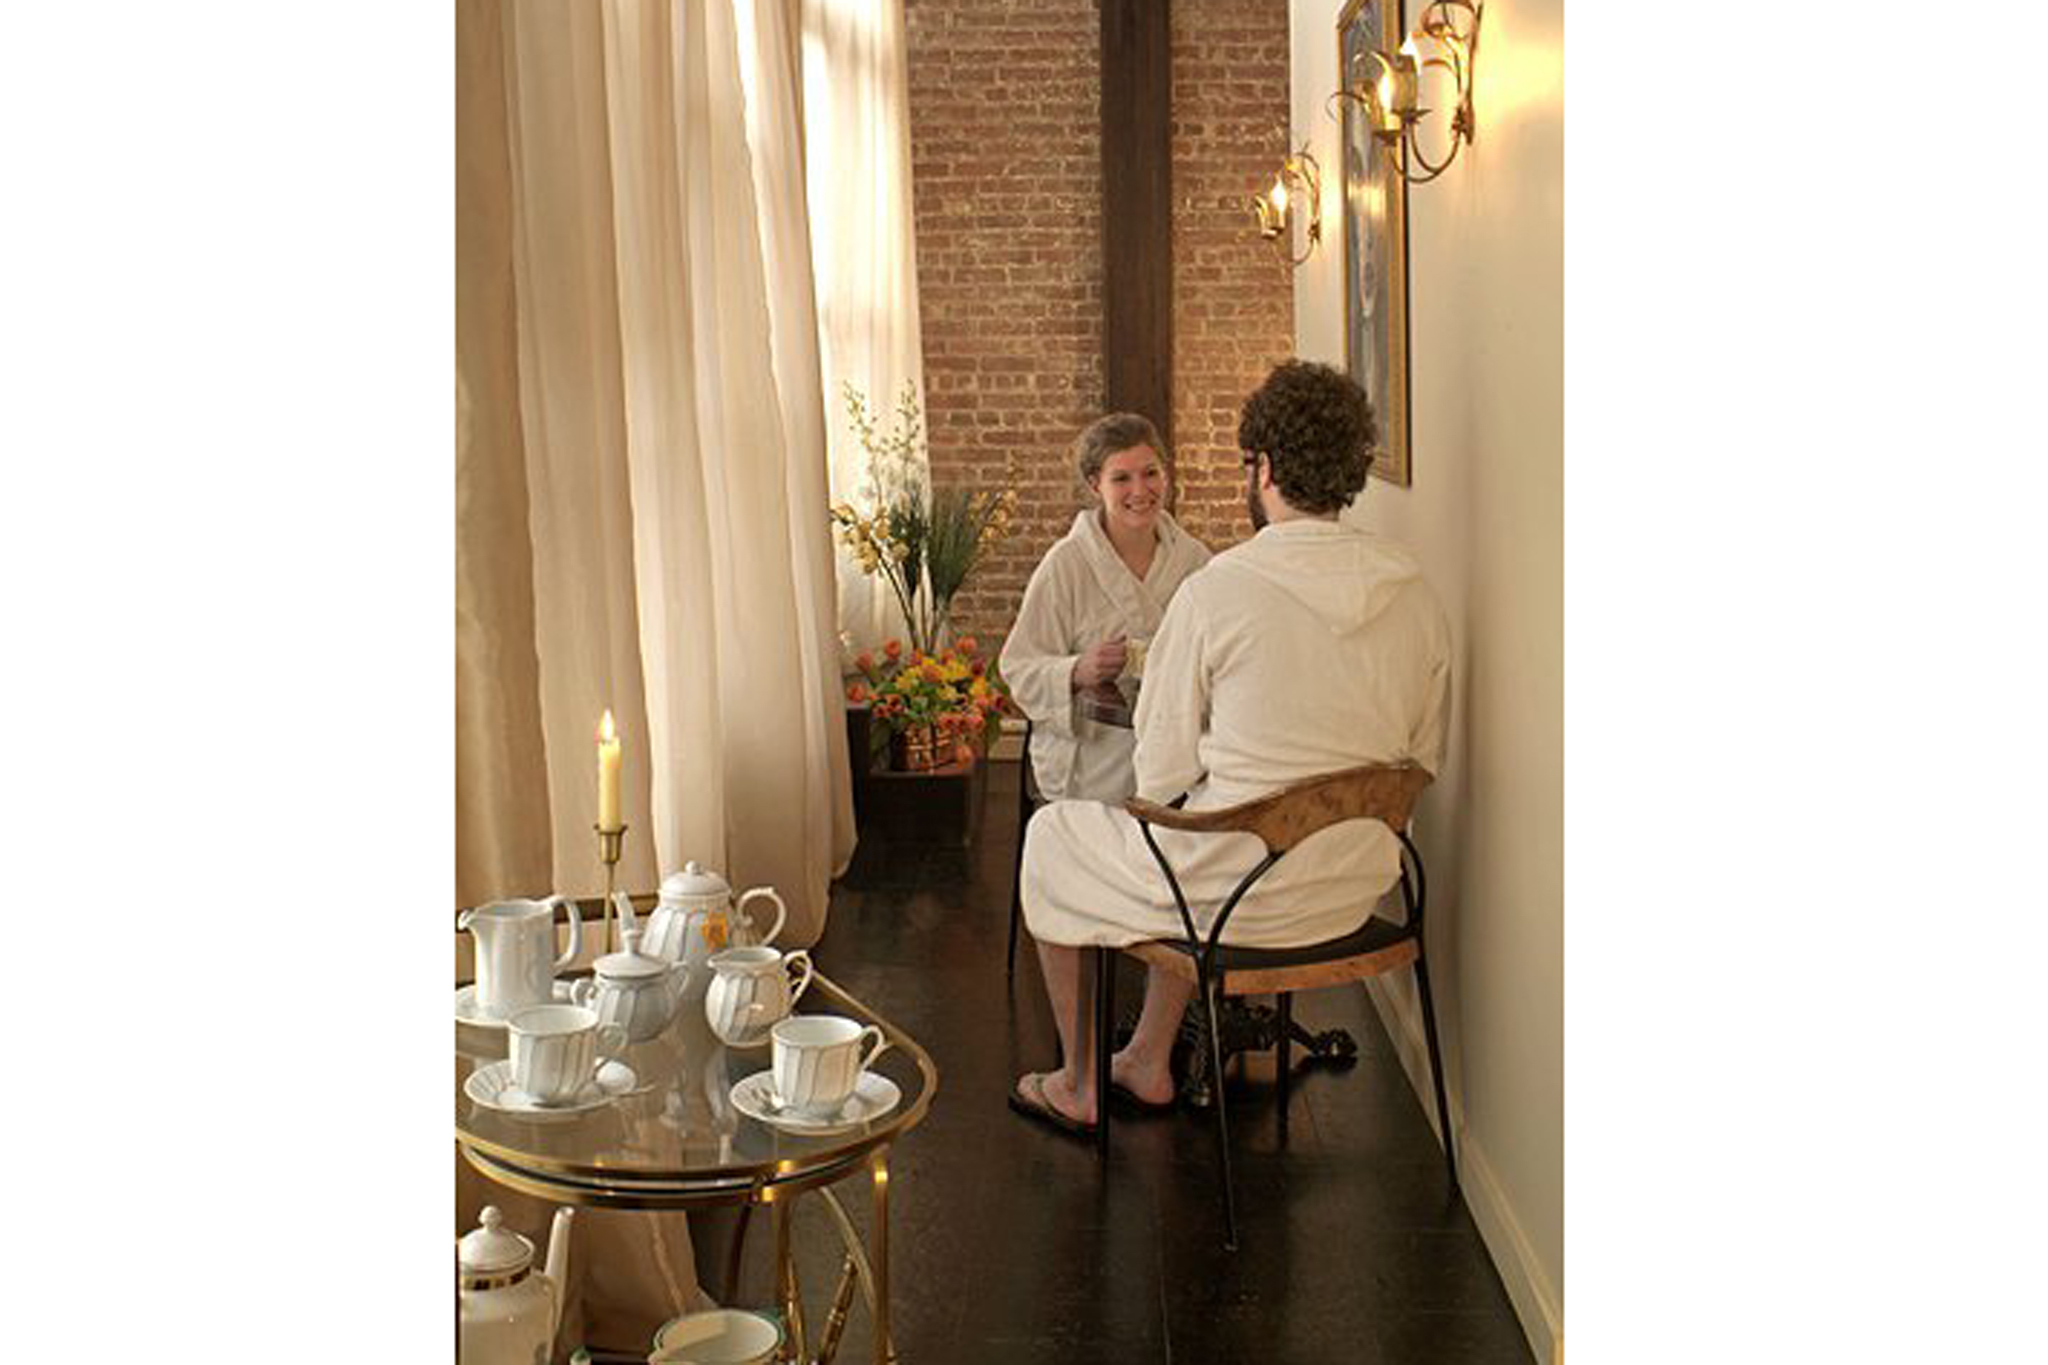 White Tea Med Spa: Anti-Aging Stem Cell Facial